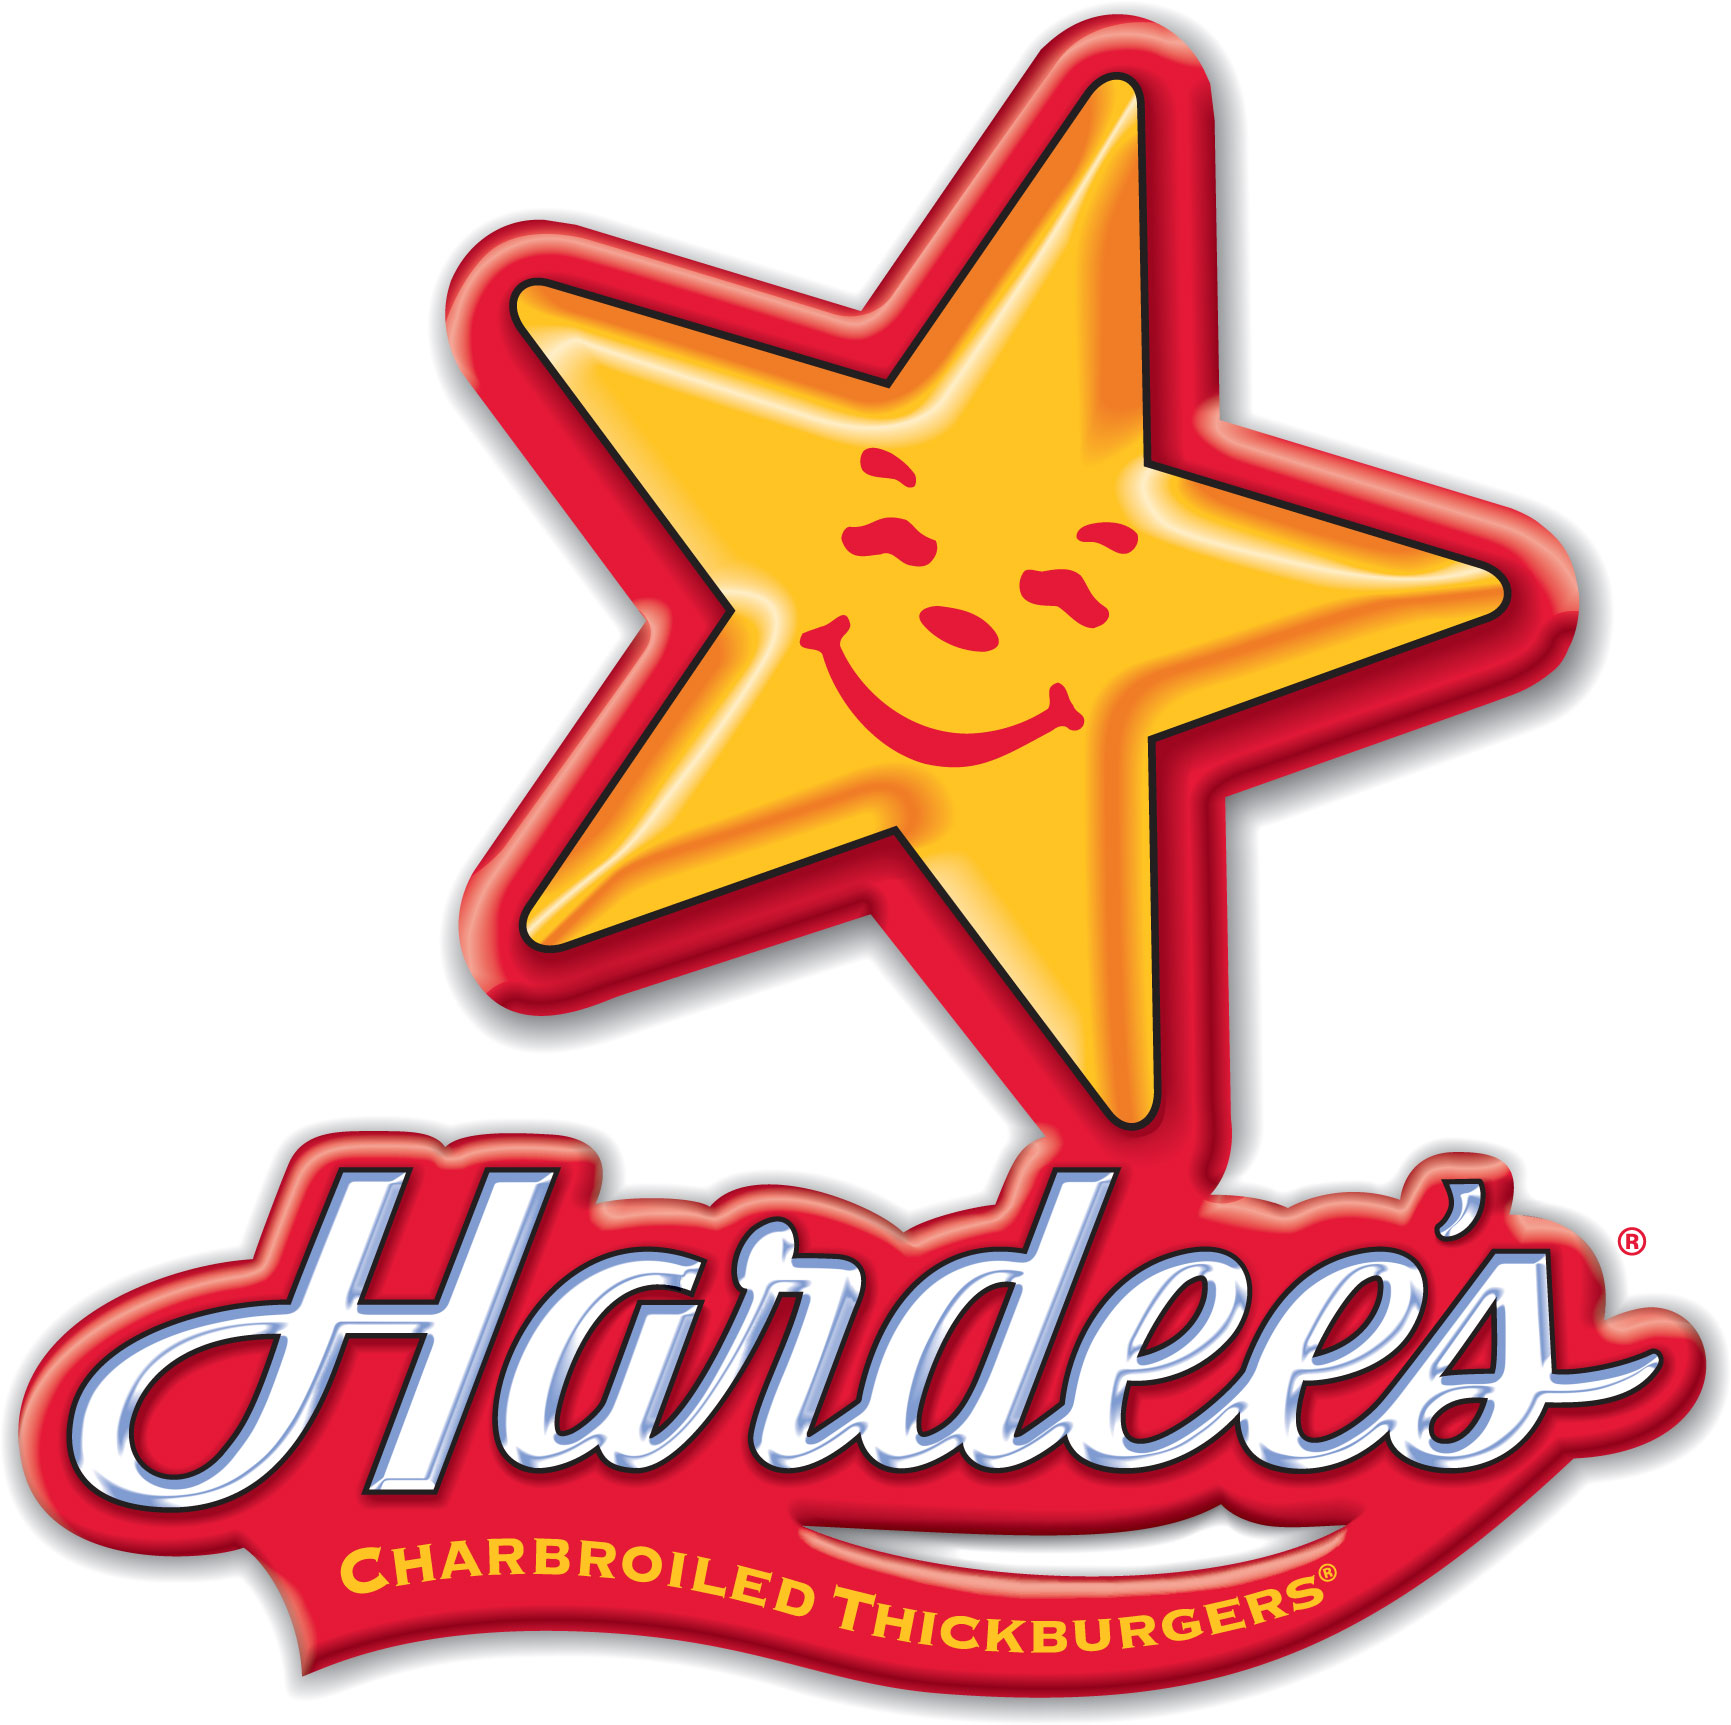 Hardee's Franchise locally owned & operated by Drain Enterprises, Inc.